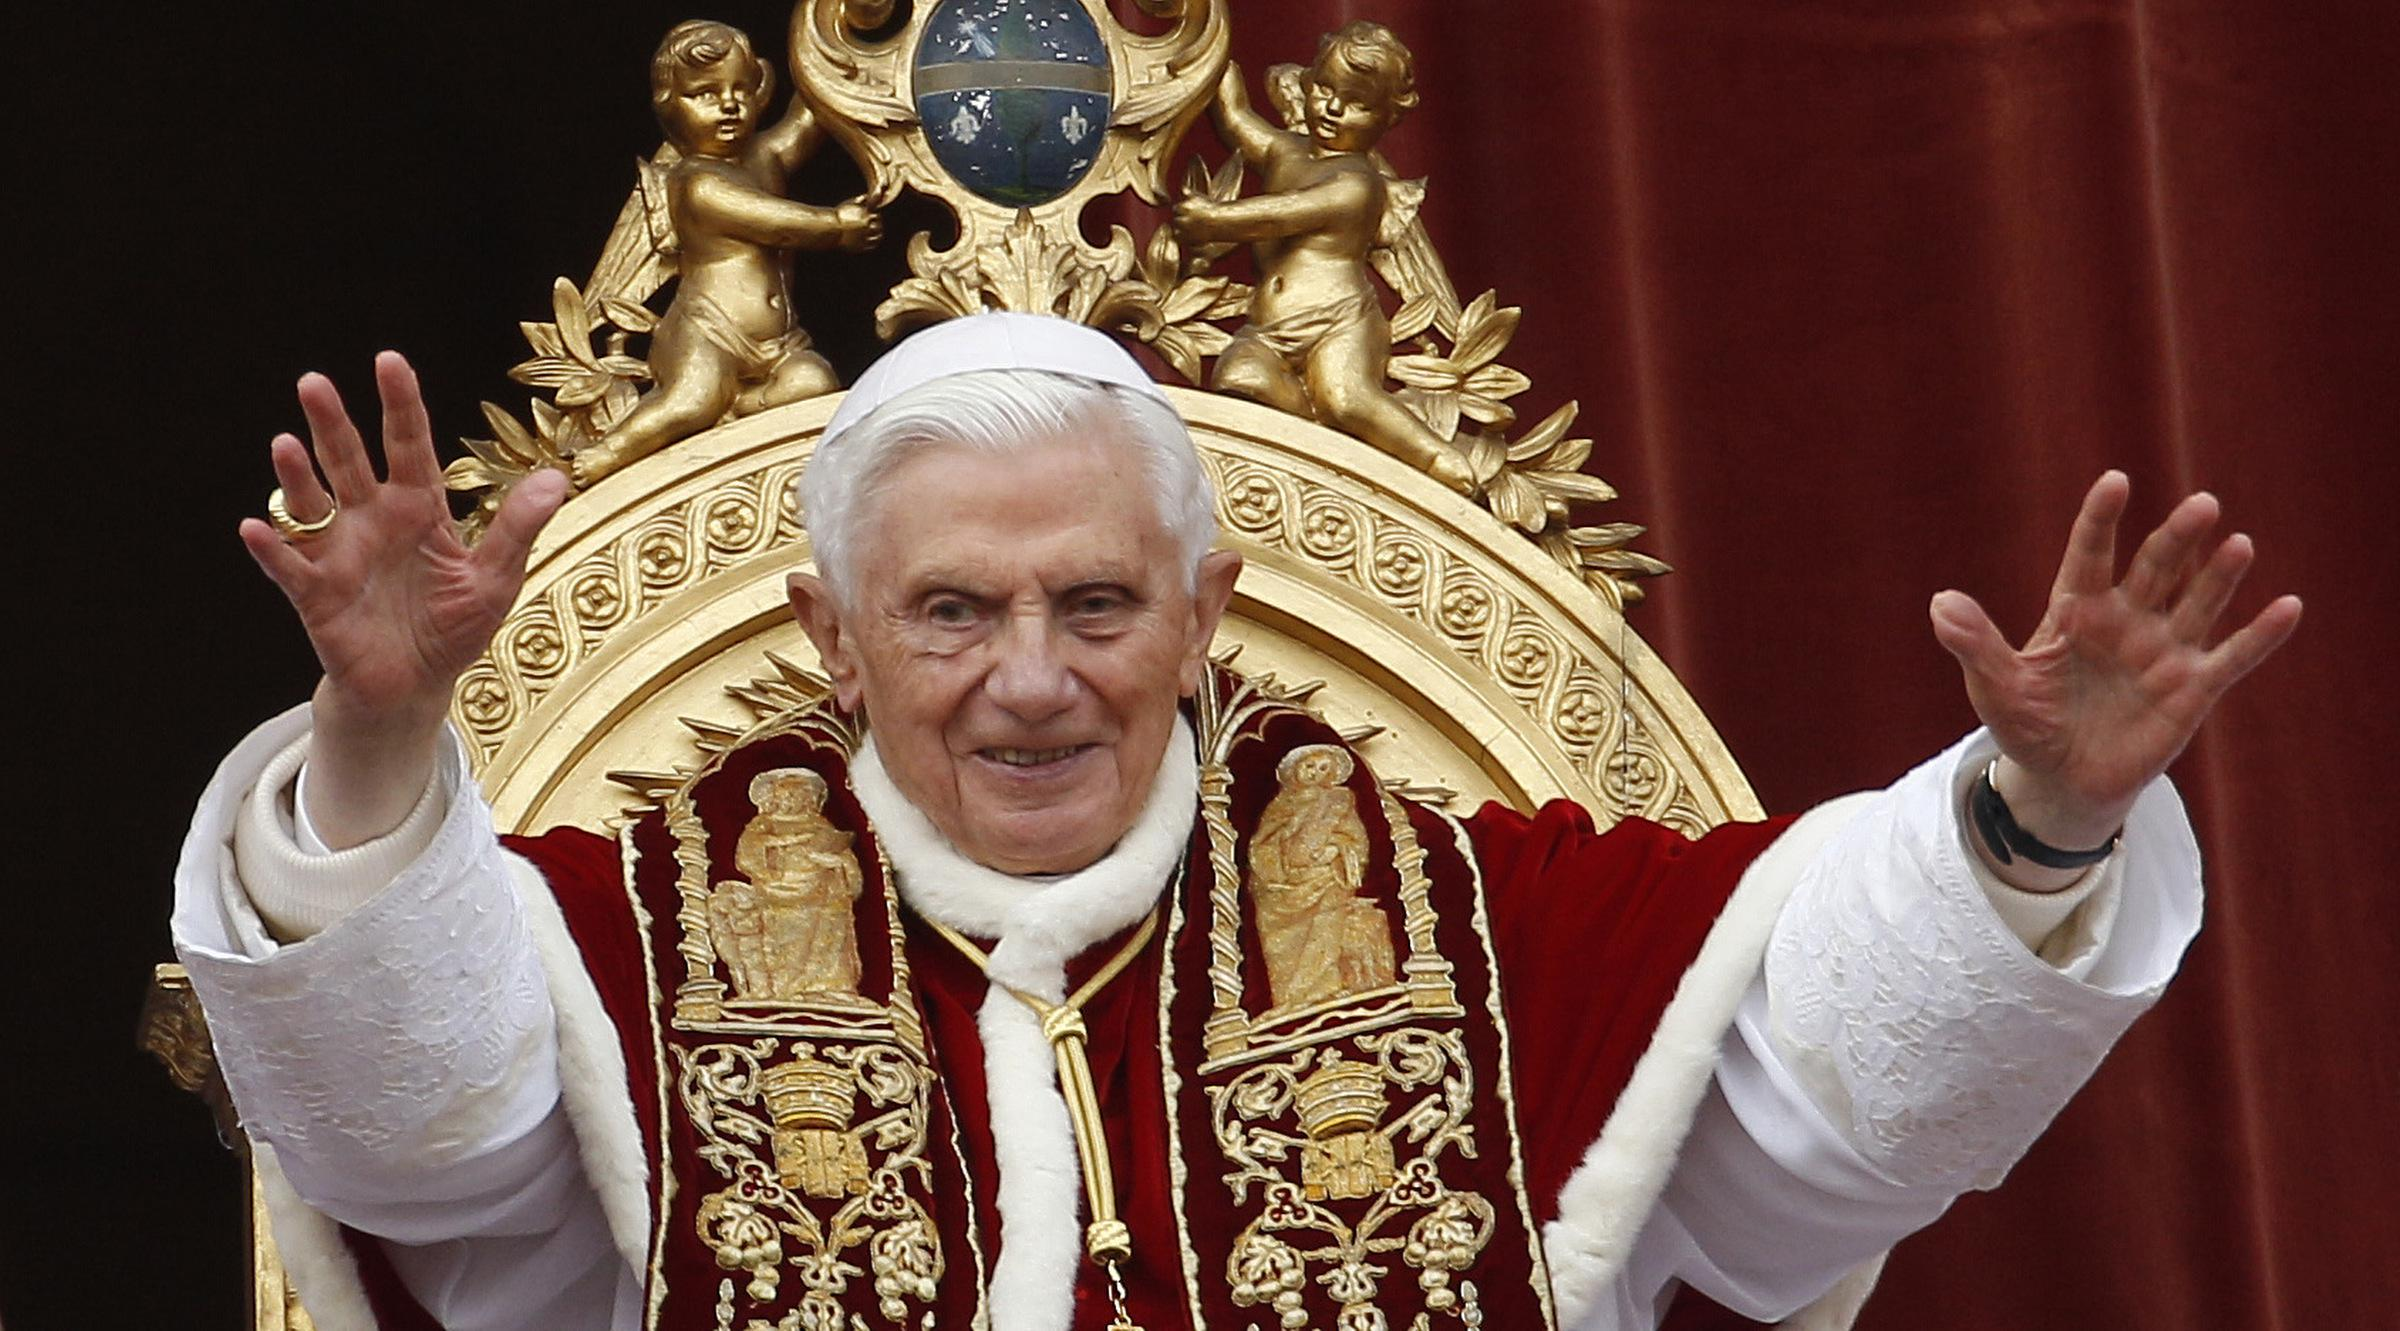 Pope Benedict XVI Will Resign